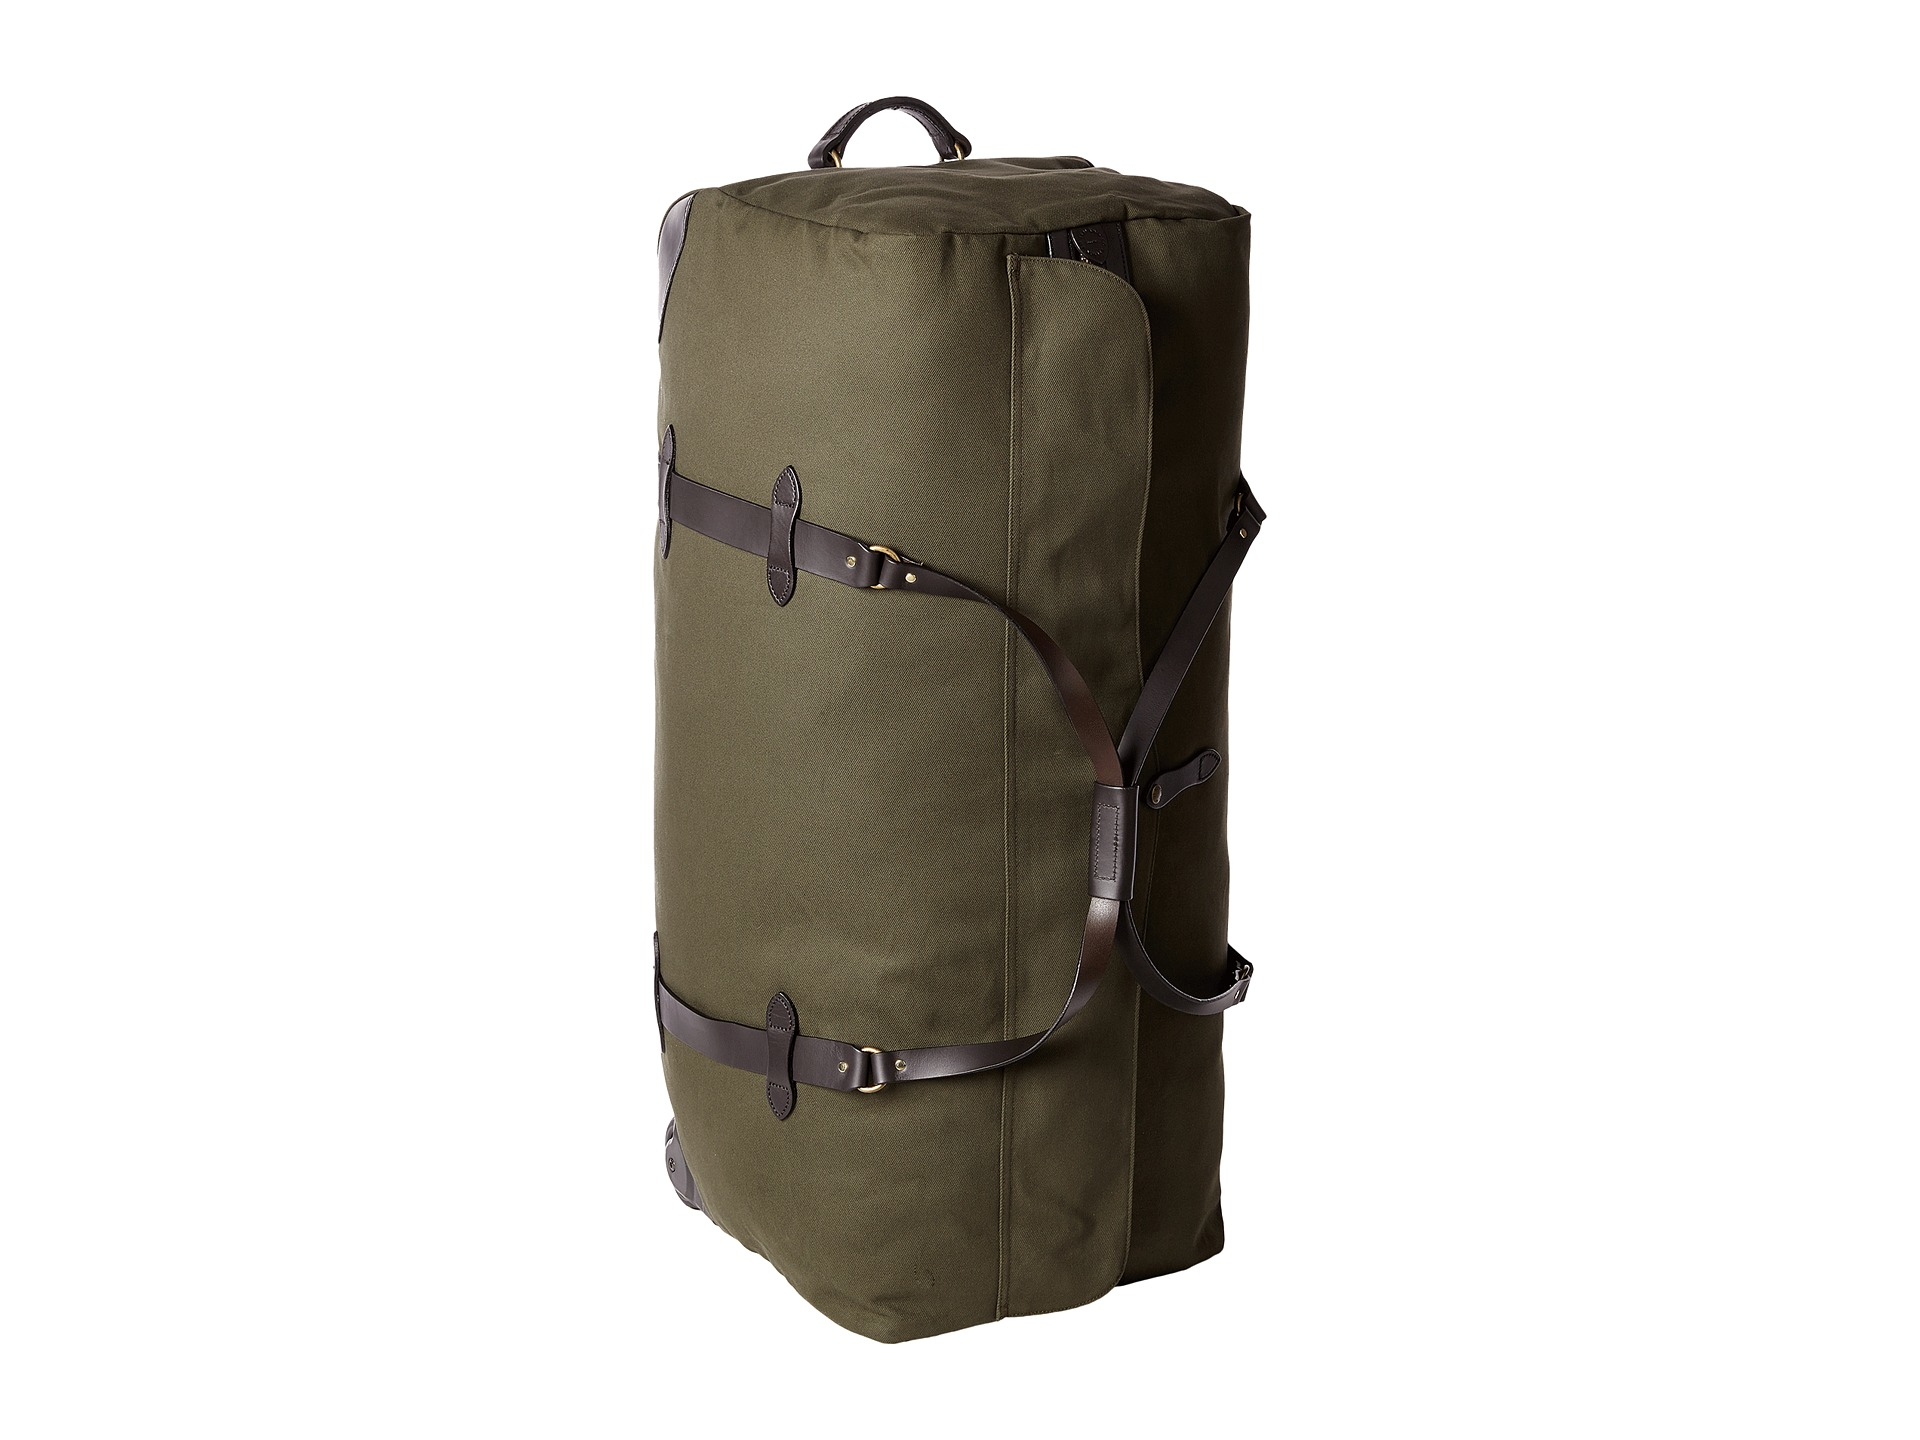 ce431bef7015 Lyst - Filson Rolling Duffel - Extra Large in Green